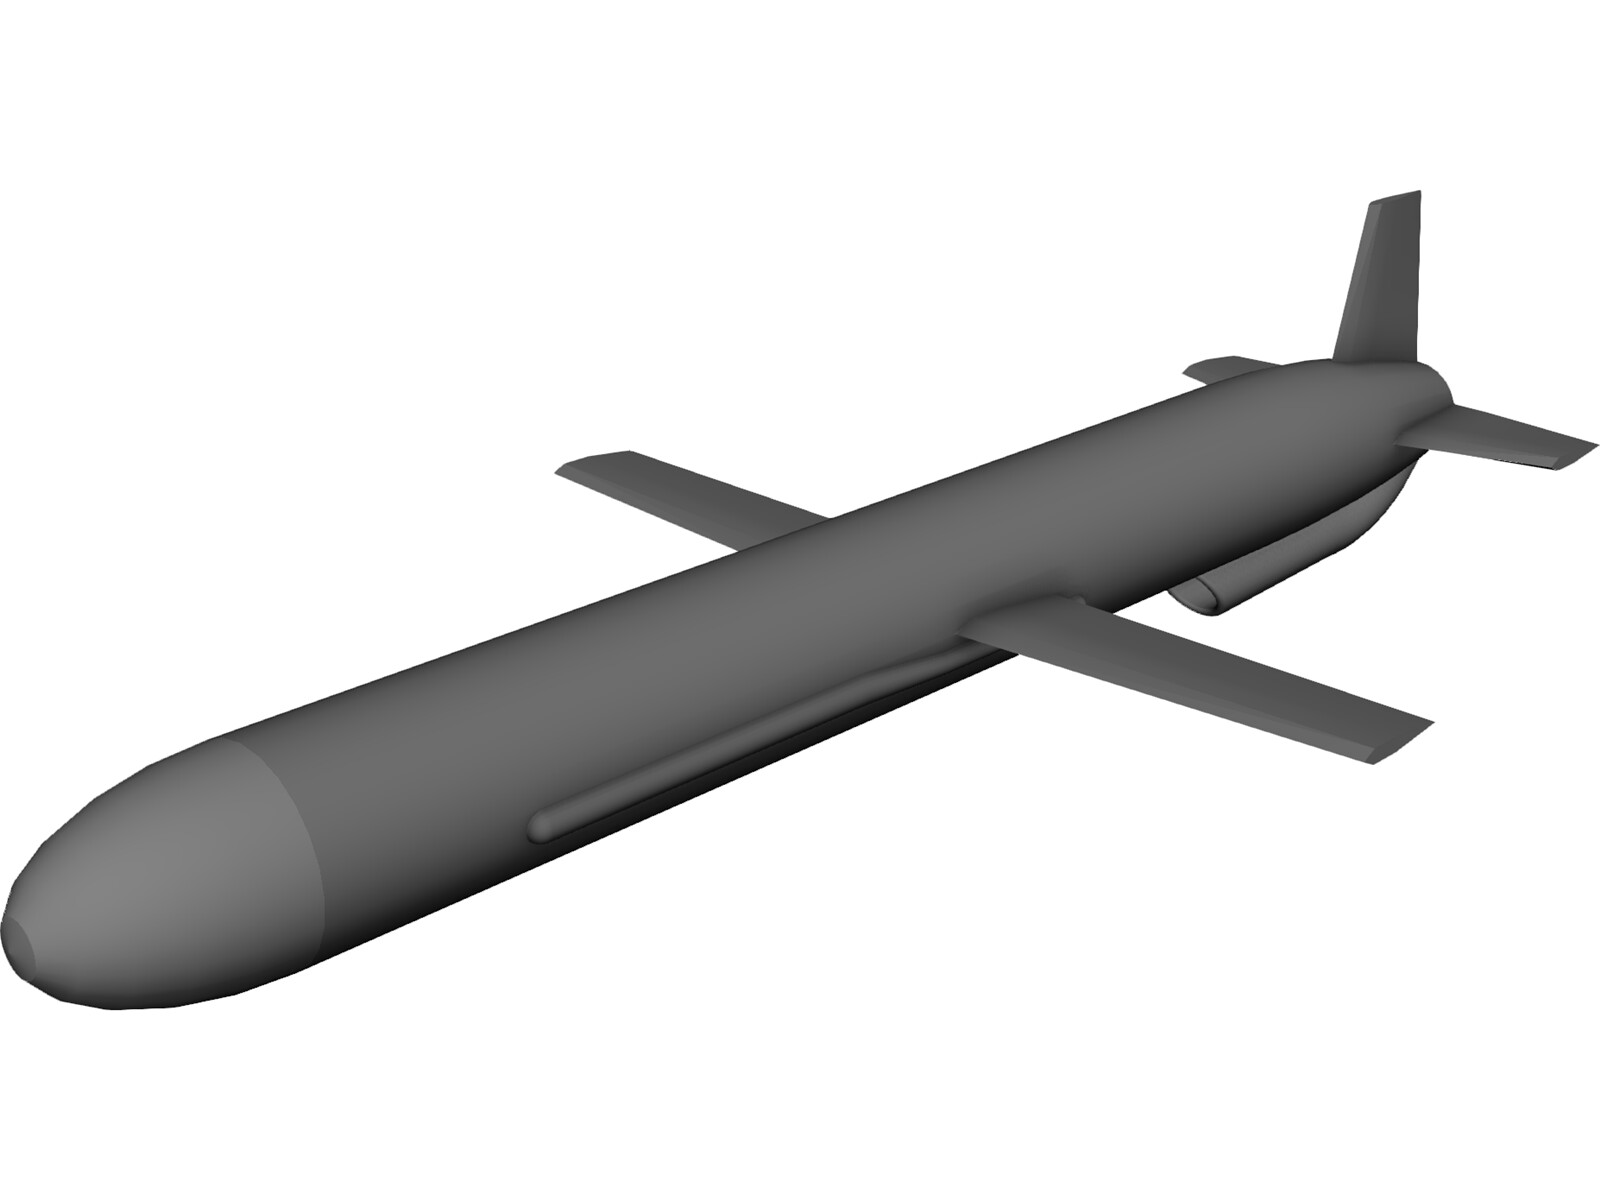 Russian AS-15 Air-Launched Cruise Missile (ALCM)